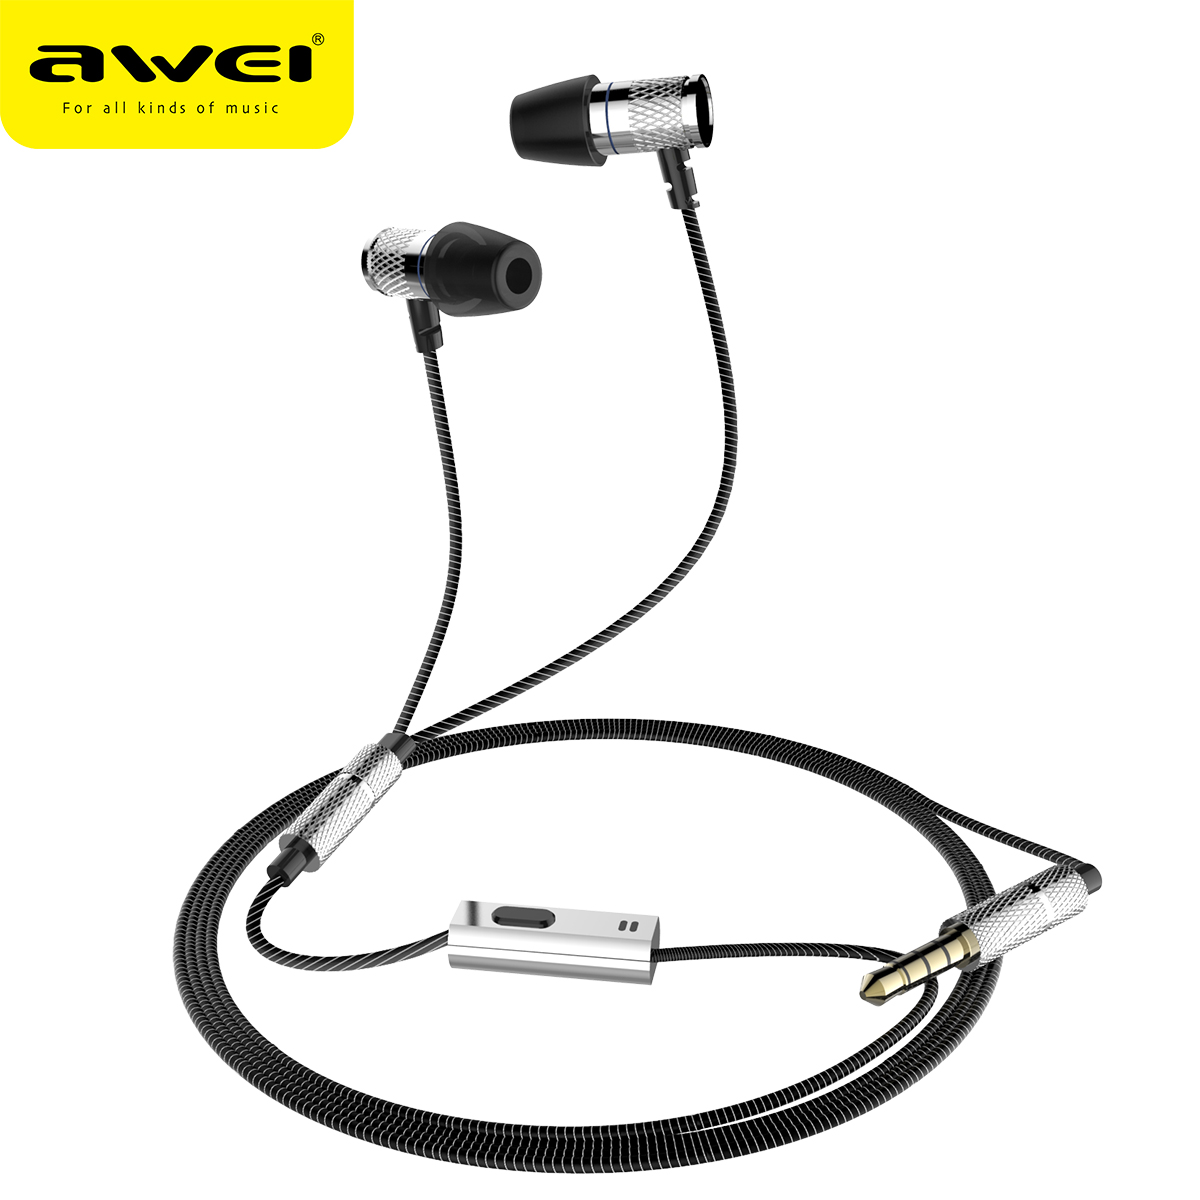 AWEI ES-660i Wired Earphones HiFi Stereo In Ear Earpiece Super Bass Sound Sport Music Earbud fone de ouvido casque auriculares